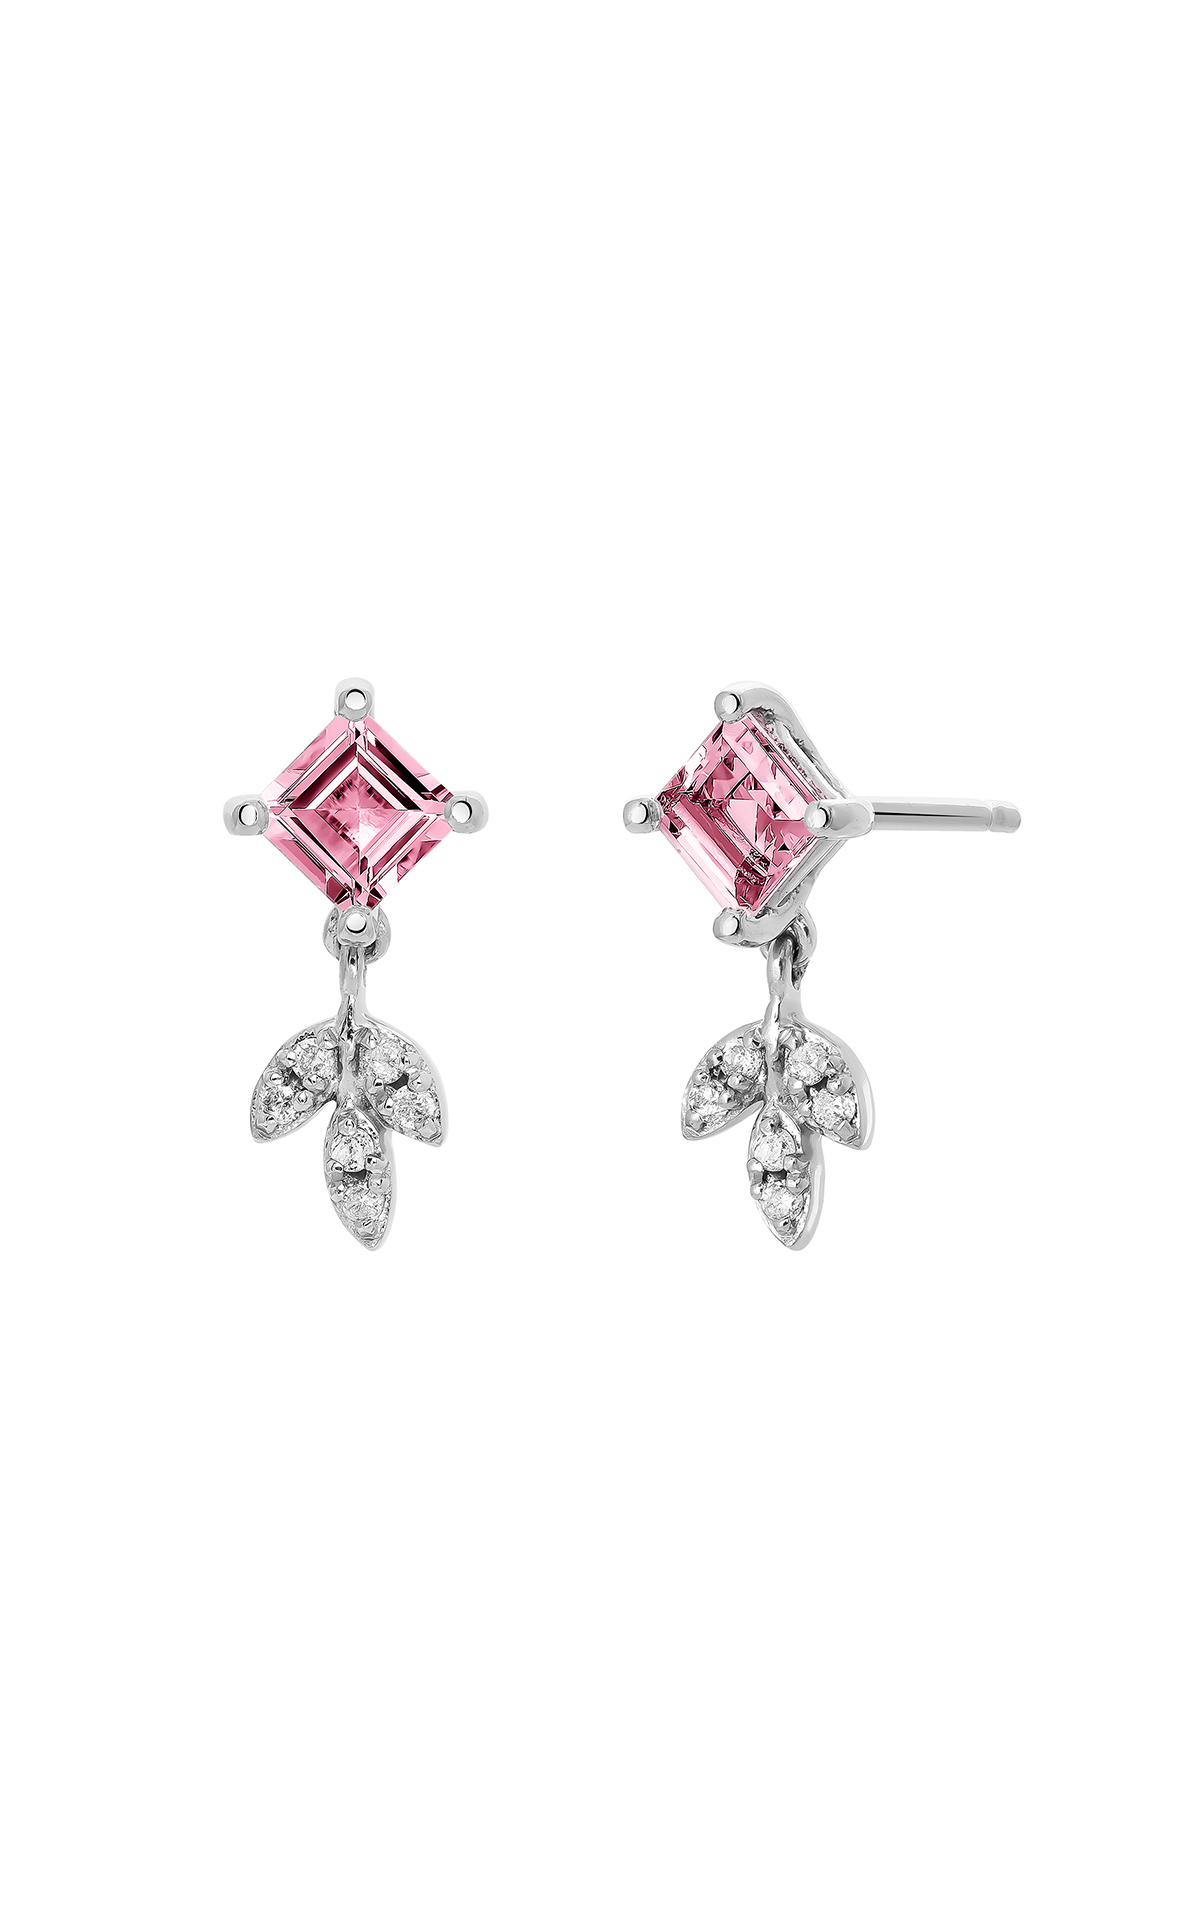 Earrings with pink stone Aristocrazy